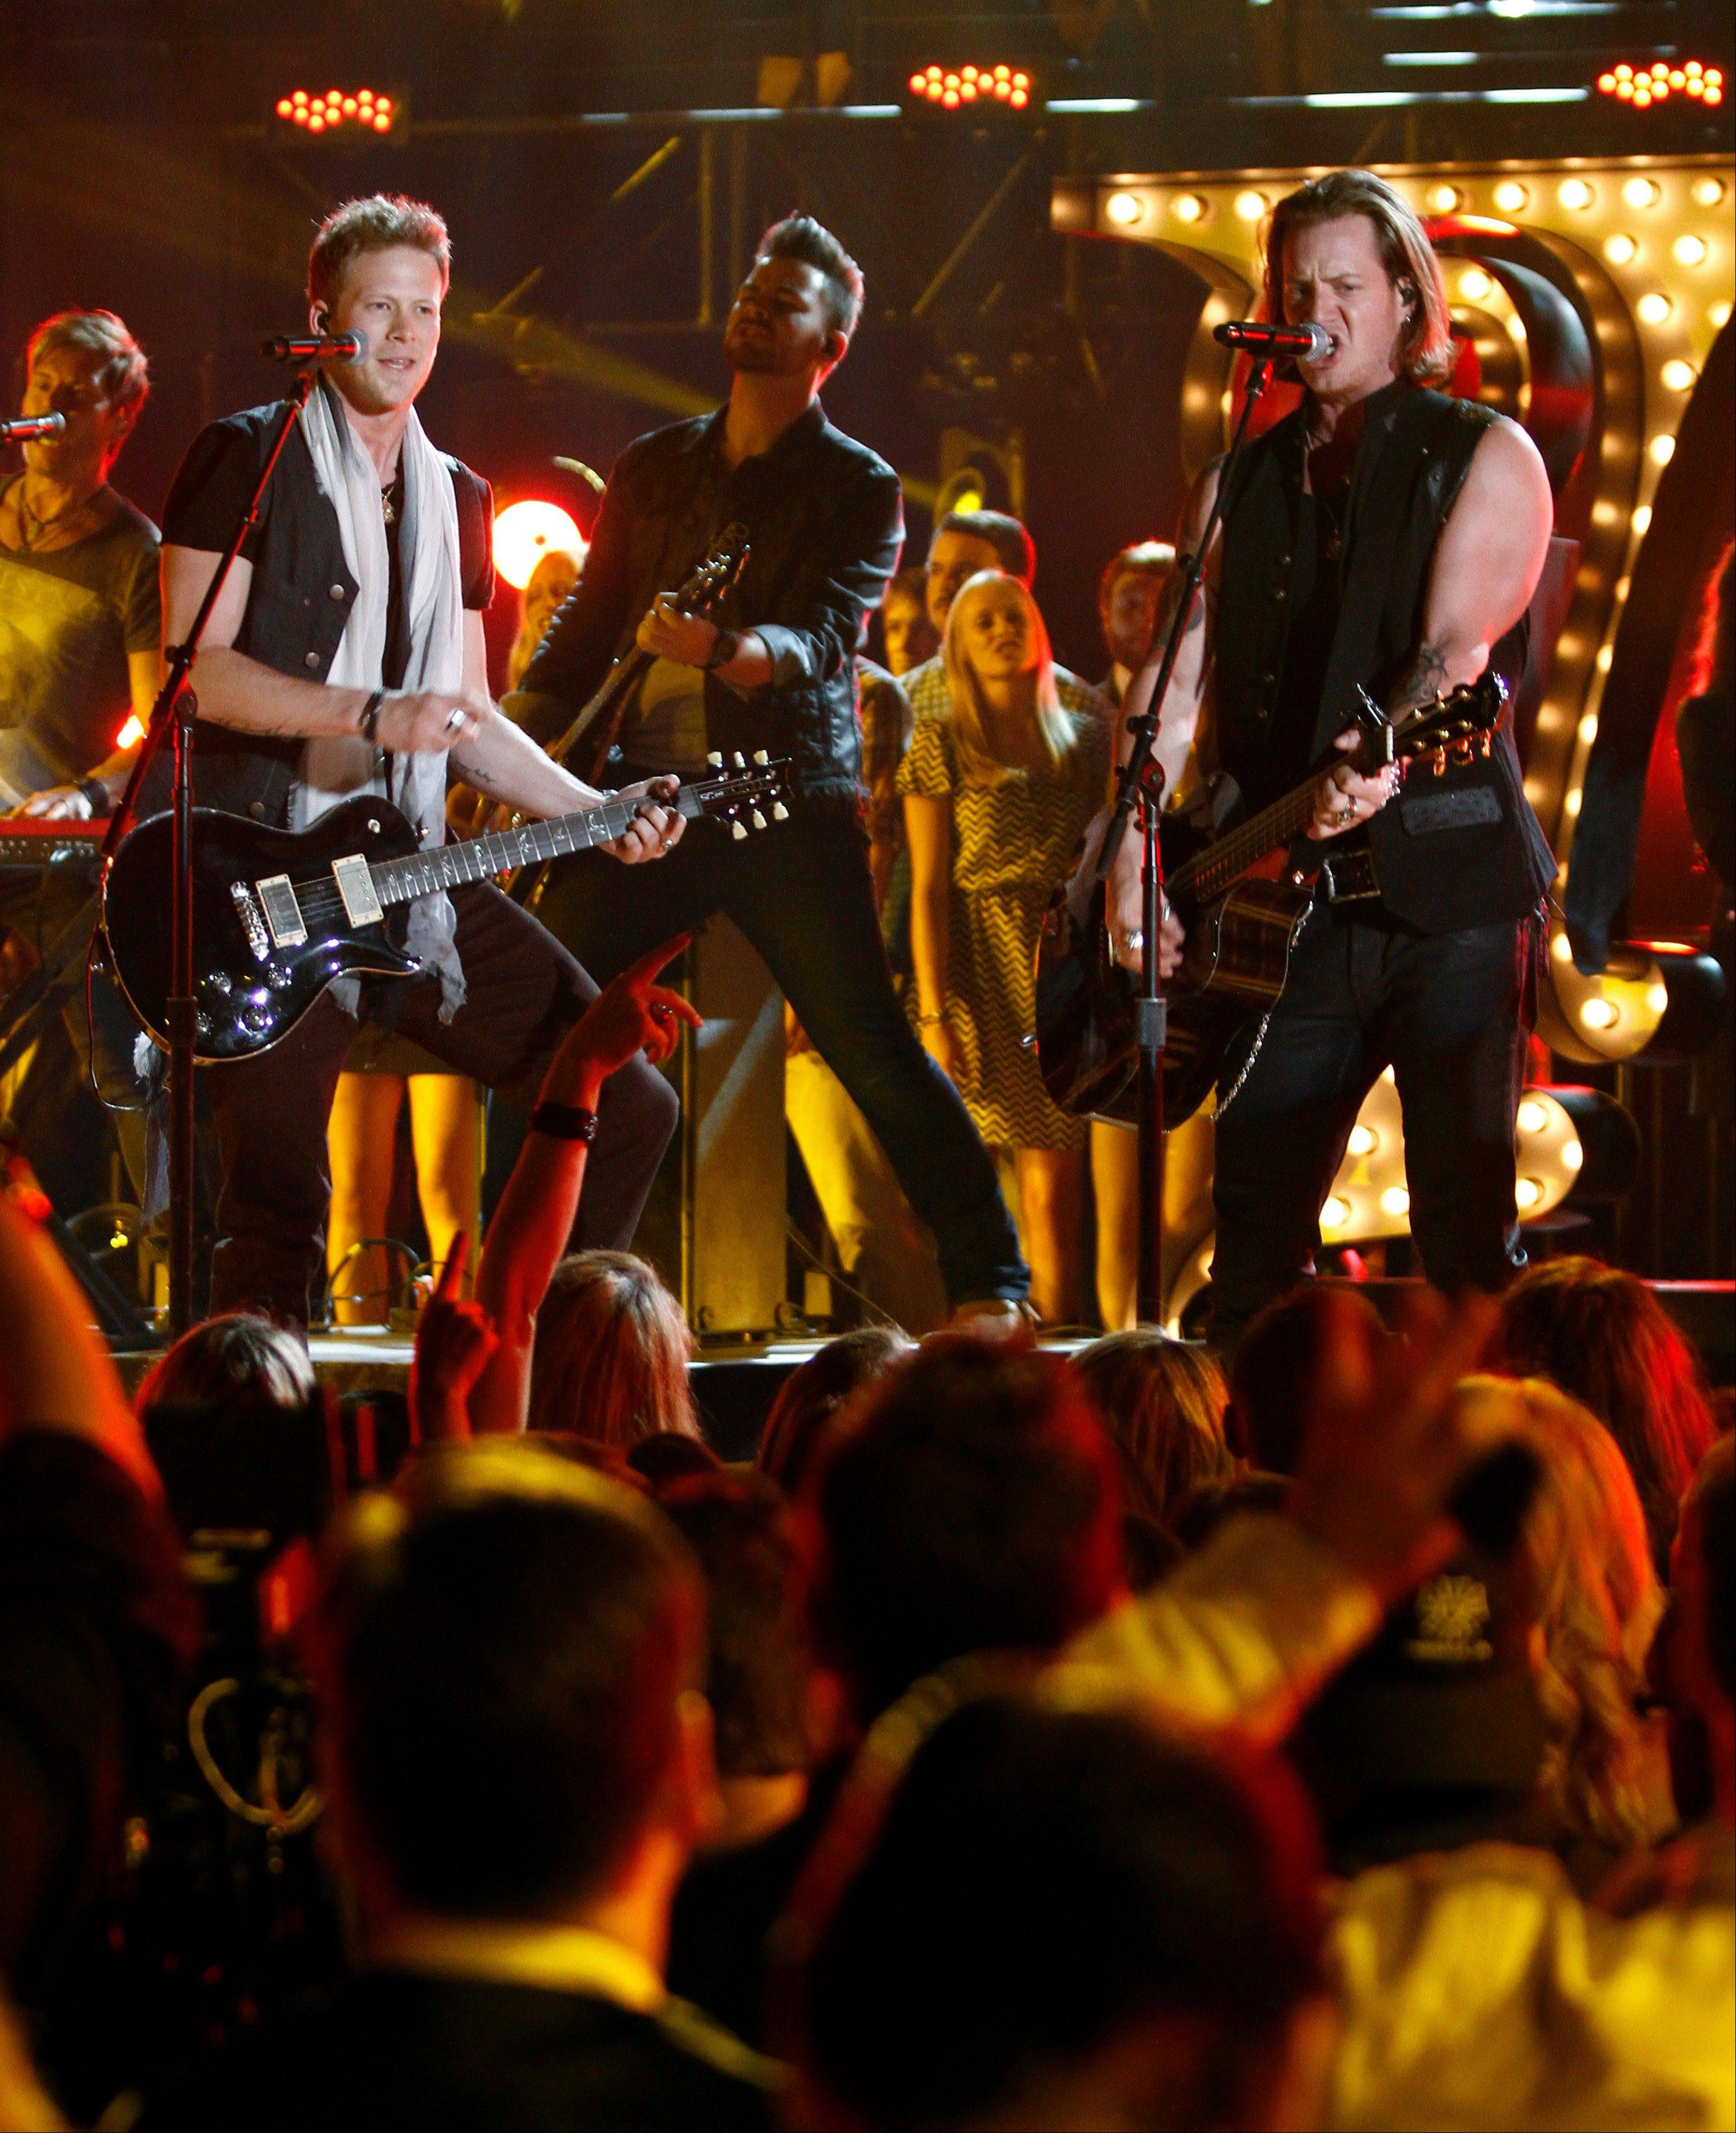 Florida Georgia Line's Brian Kelley, left, and Tyler Hubbard, right, perform